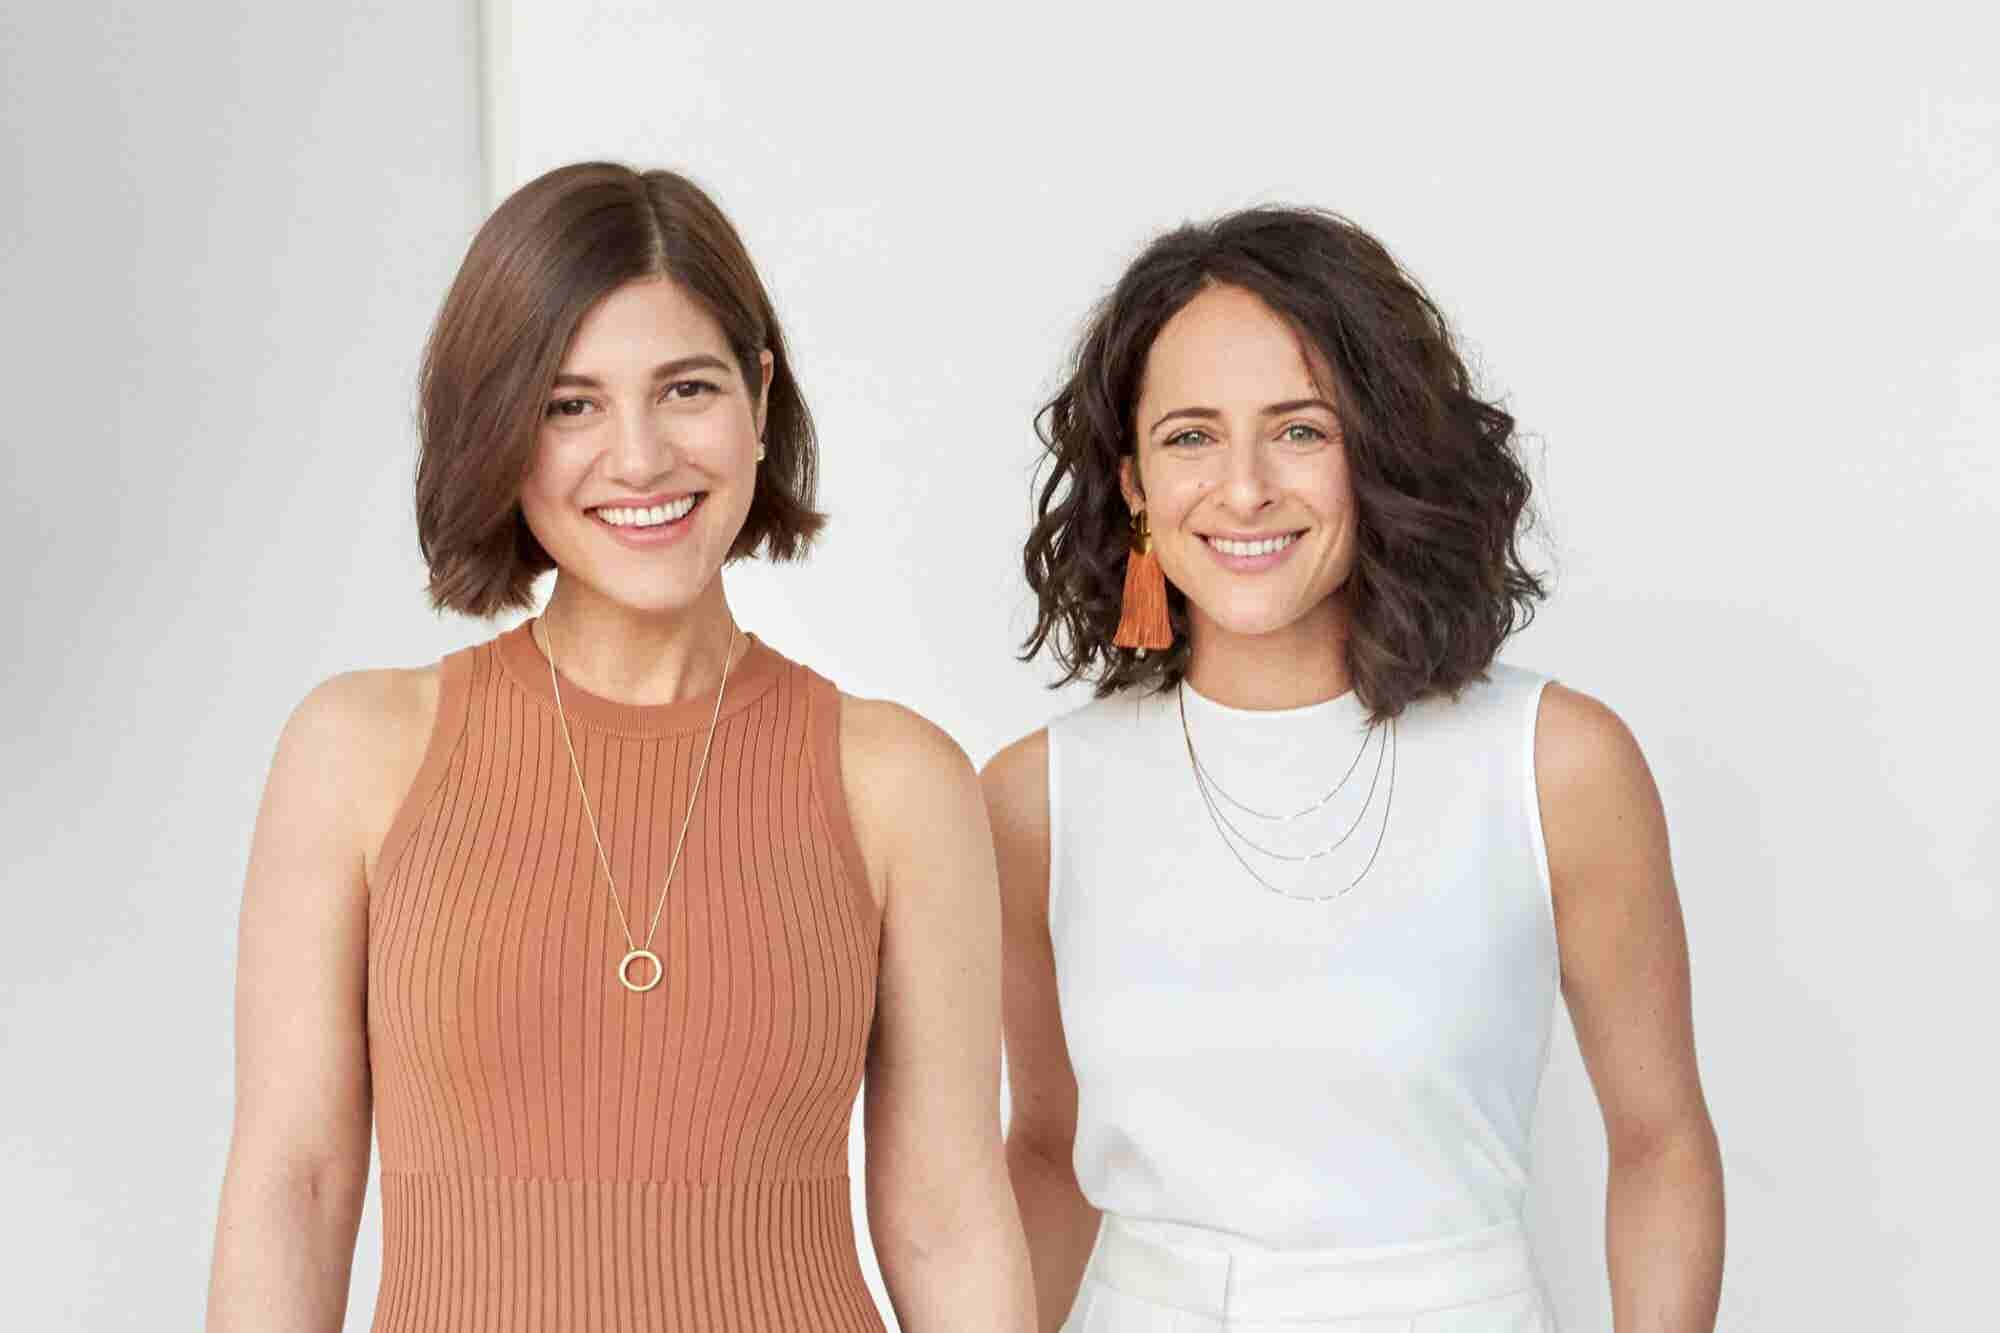 How the Female Co-founders of Of a Kind Strengthened Their Partnership and Learned the Value of a Good Fight